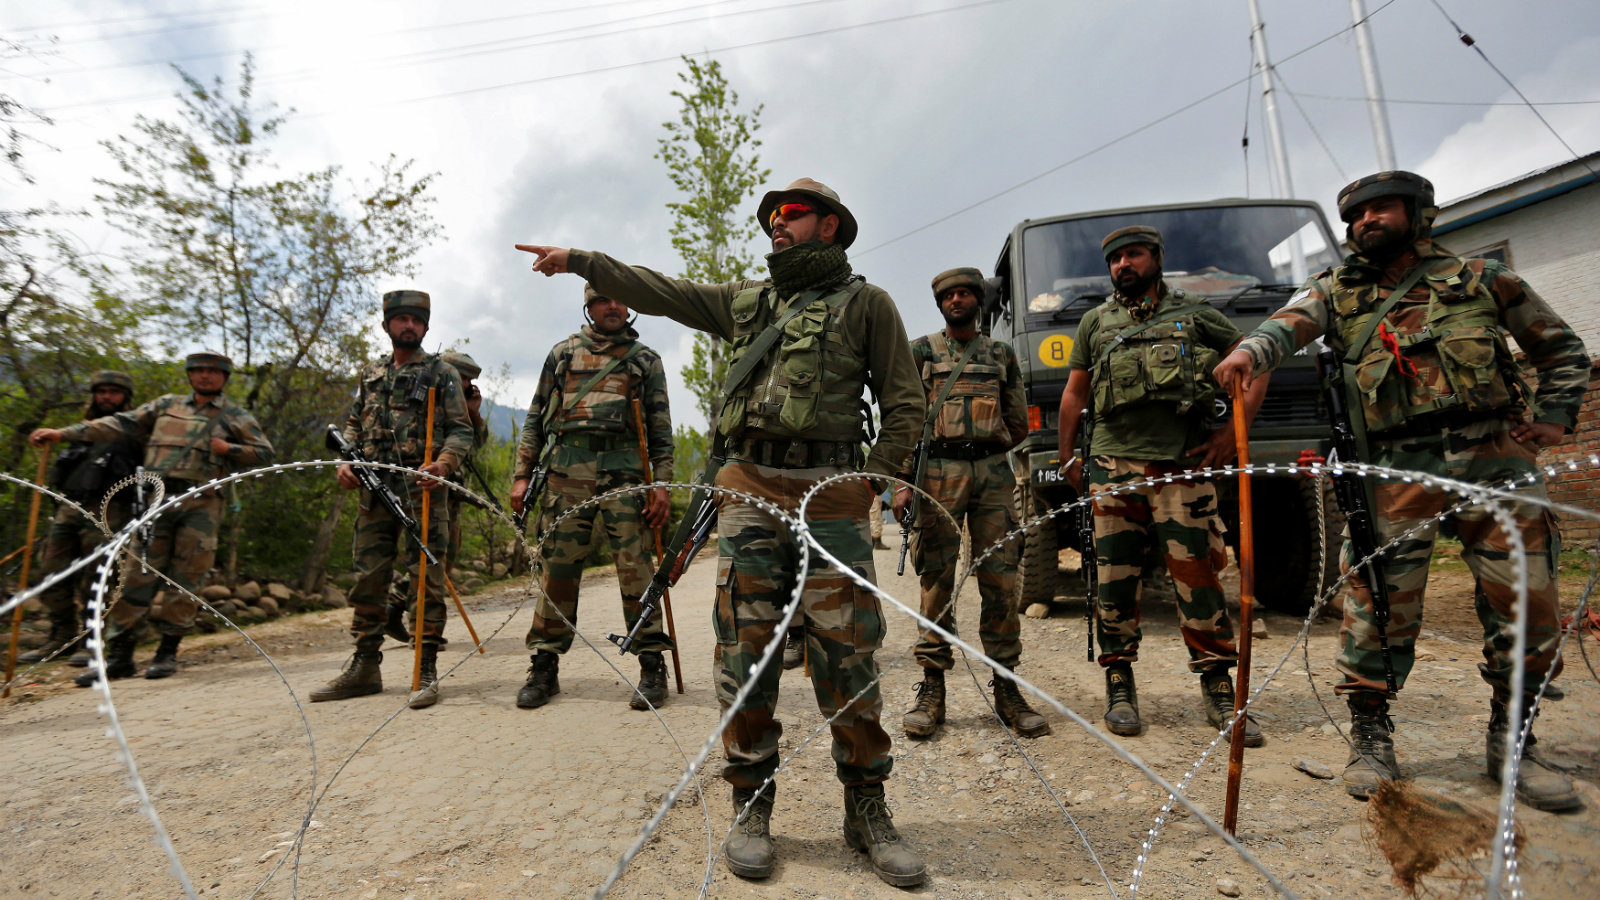 Indian army soldiers stand guard inside their army base after it was attacked by suspected separatist militants in Panzgam in Kashmir's Kupwara district, April 27, 2017.